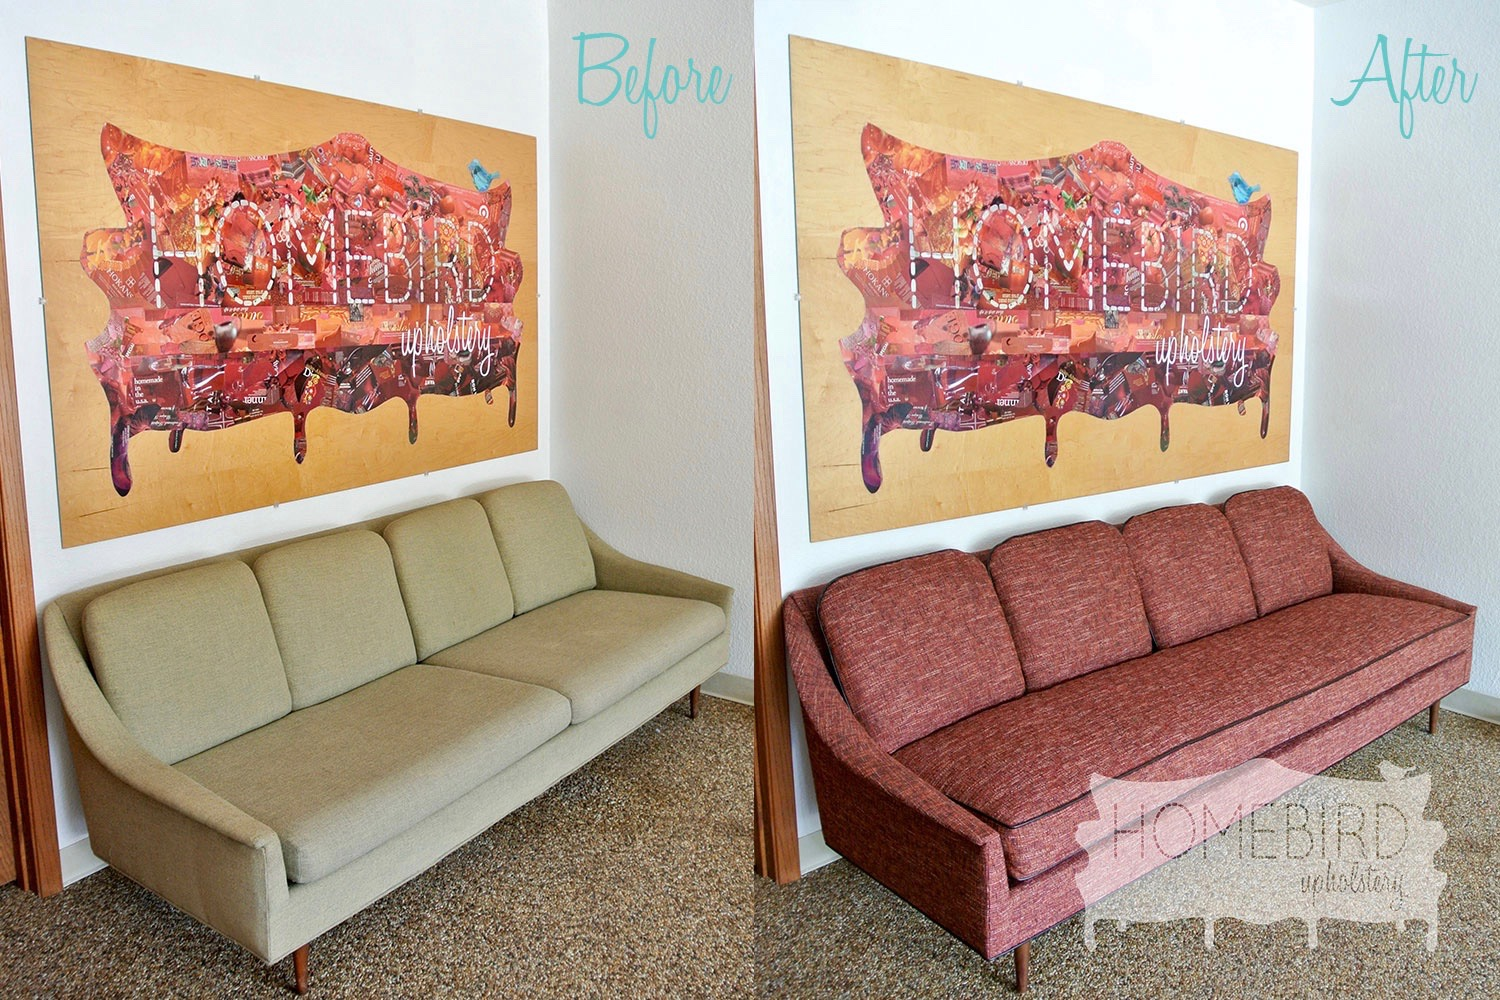 Jenna-Pilant-Upholstery-Artist-Homebird-Upholstery-Before-&-After-Angle-View-Midcentury-Modern-Tweed-Couch 2